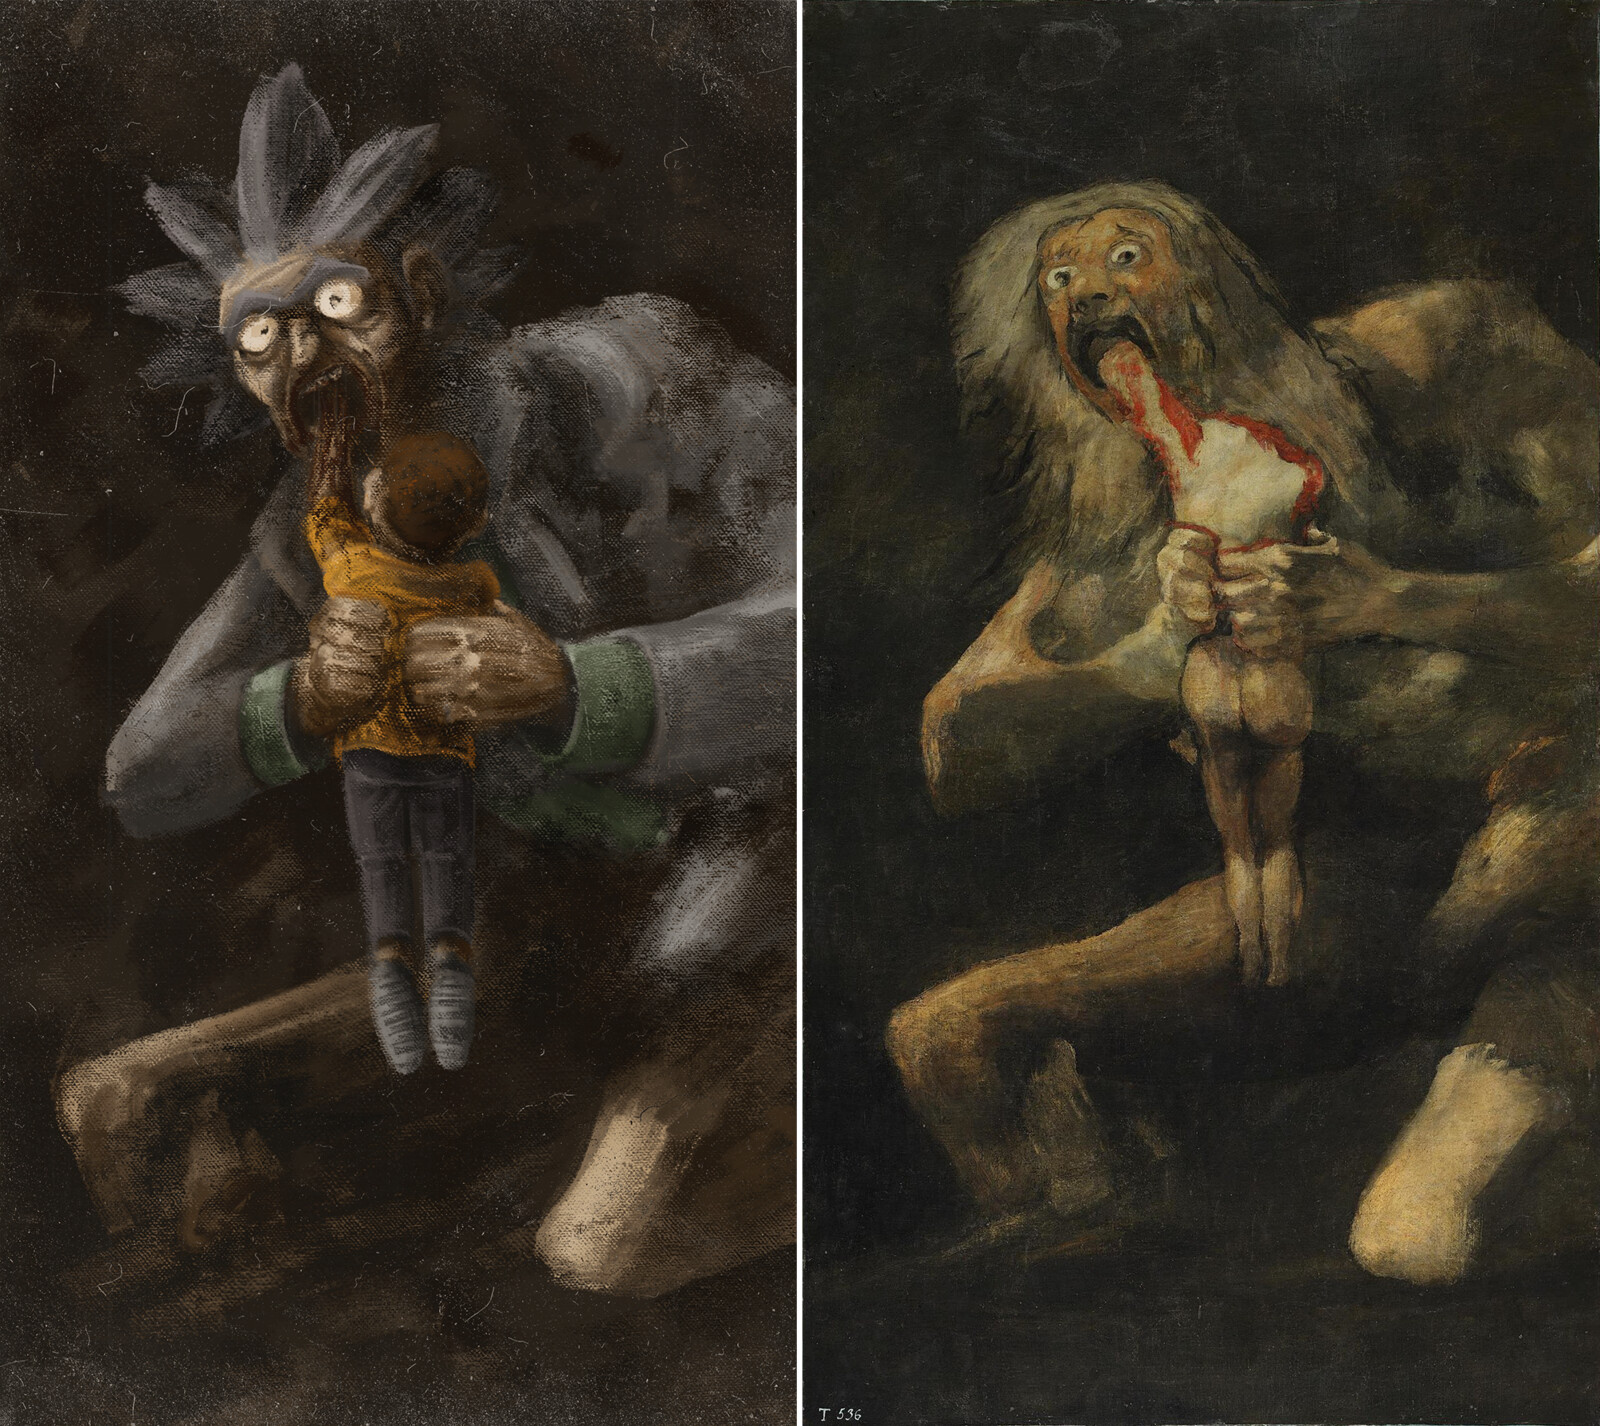 Just a homage to Francisco Goya and Rick & Morty series.